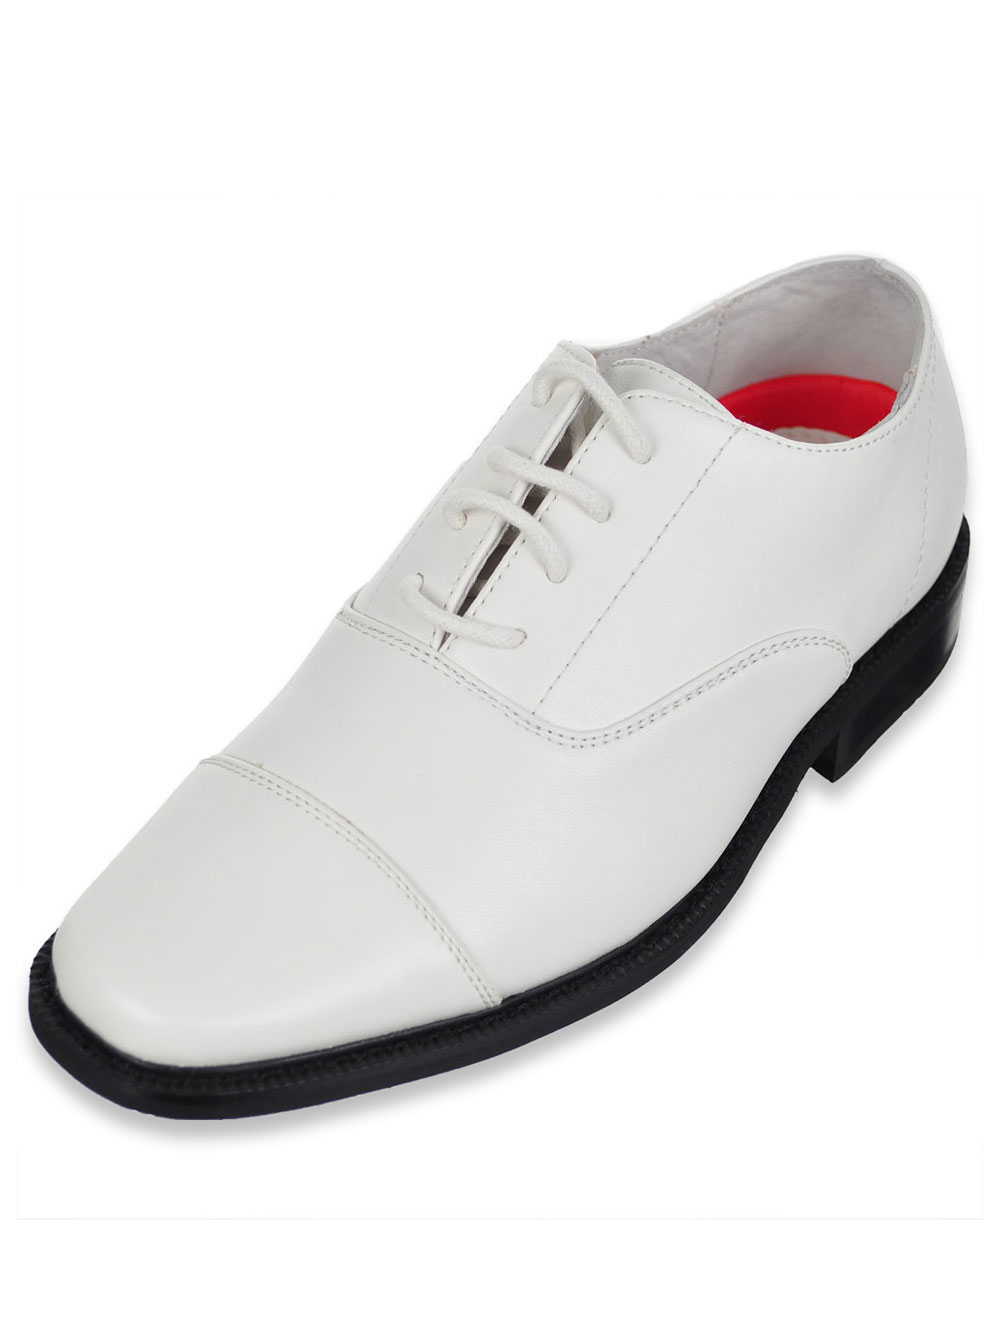 dressy shoes for boys